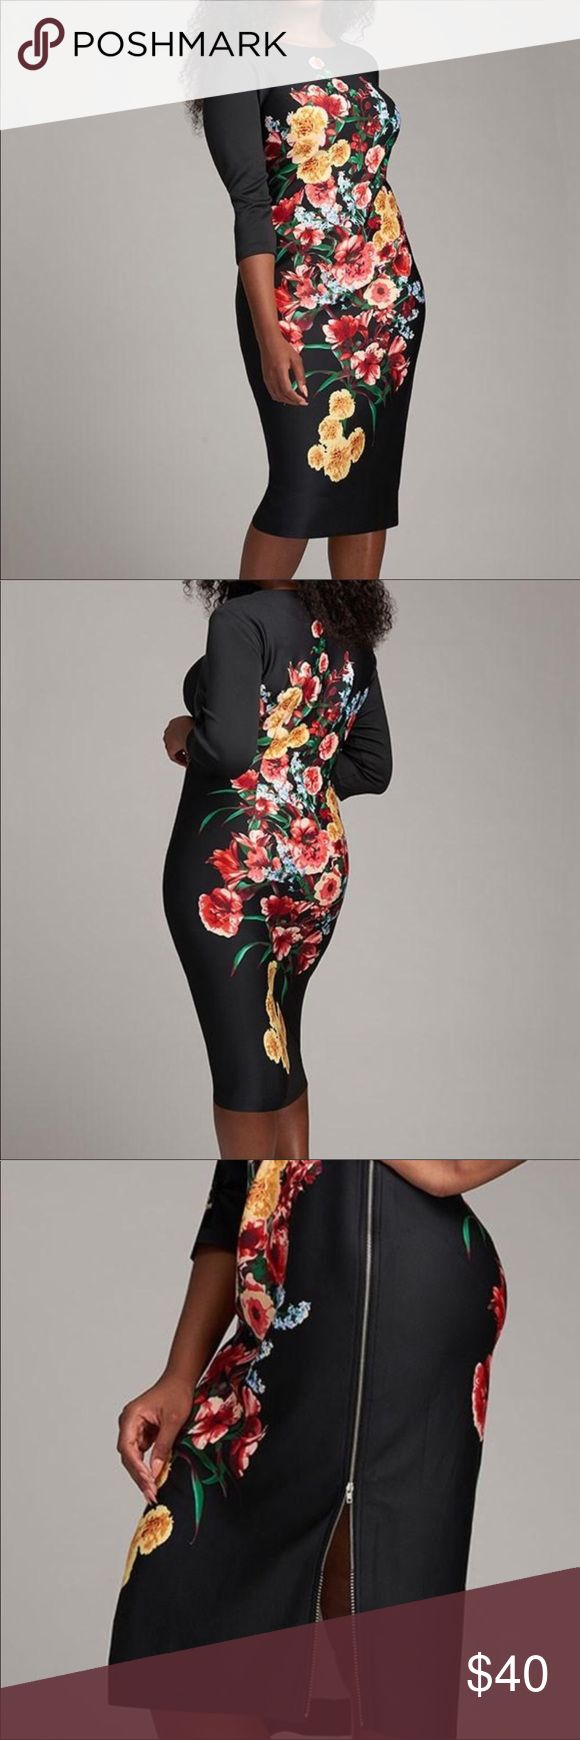 Silhouette shaping floral dress Sexy silhouette shaping dress. Black floral print. Zipper up side lets you show how much skin you want to show. Sleek and slimming 3/4 sleeves. Beautiful dress to go from day to a night out. Dresses Midi